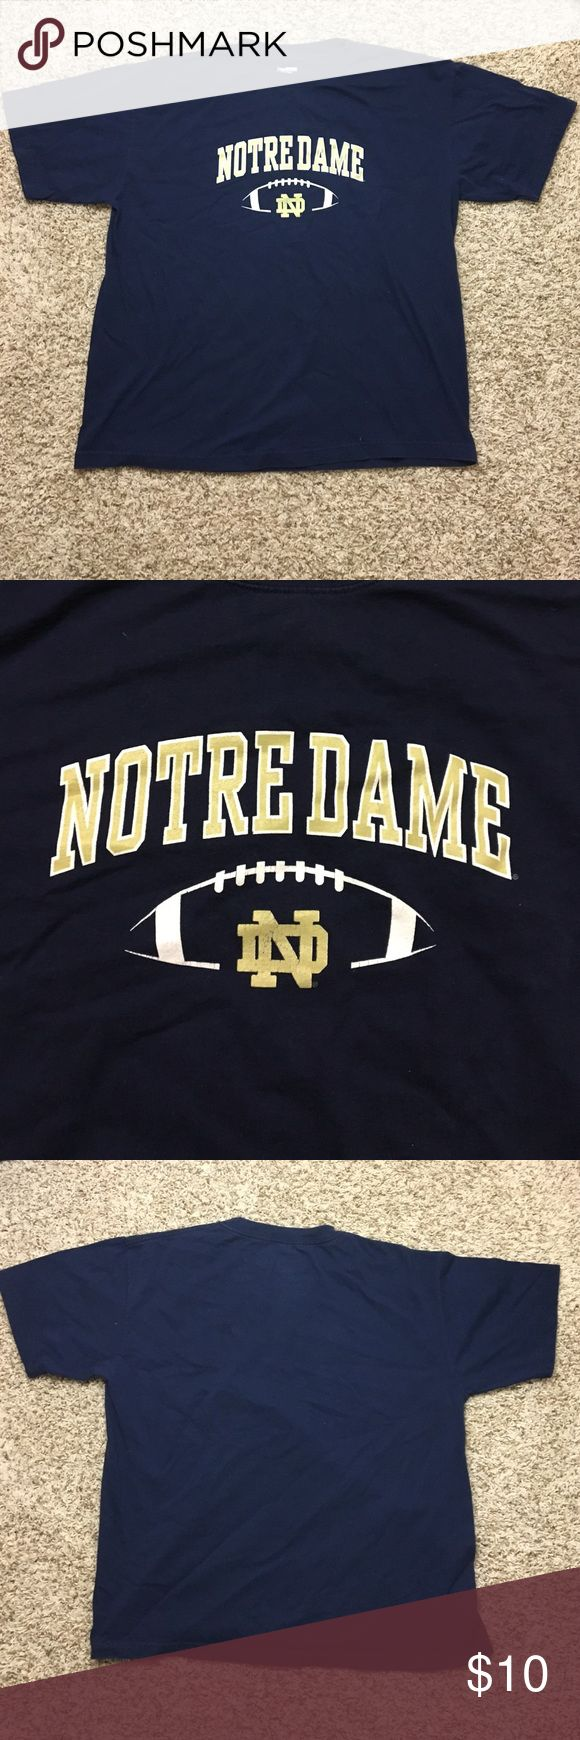 Notre Dame T Shirt Great condition shirt Tops Tees - Short Sleeve